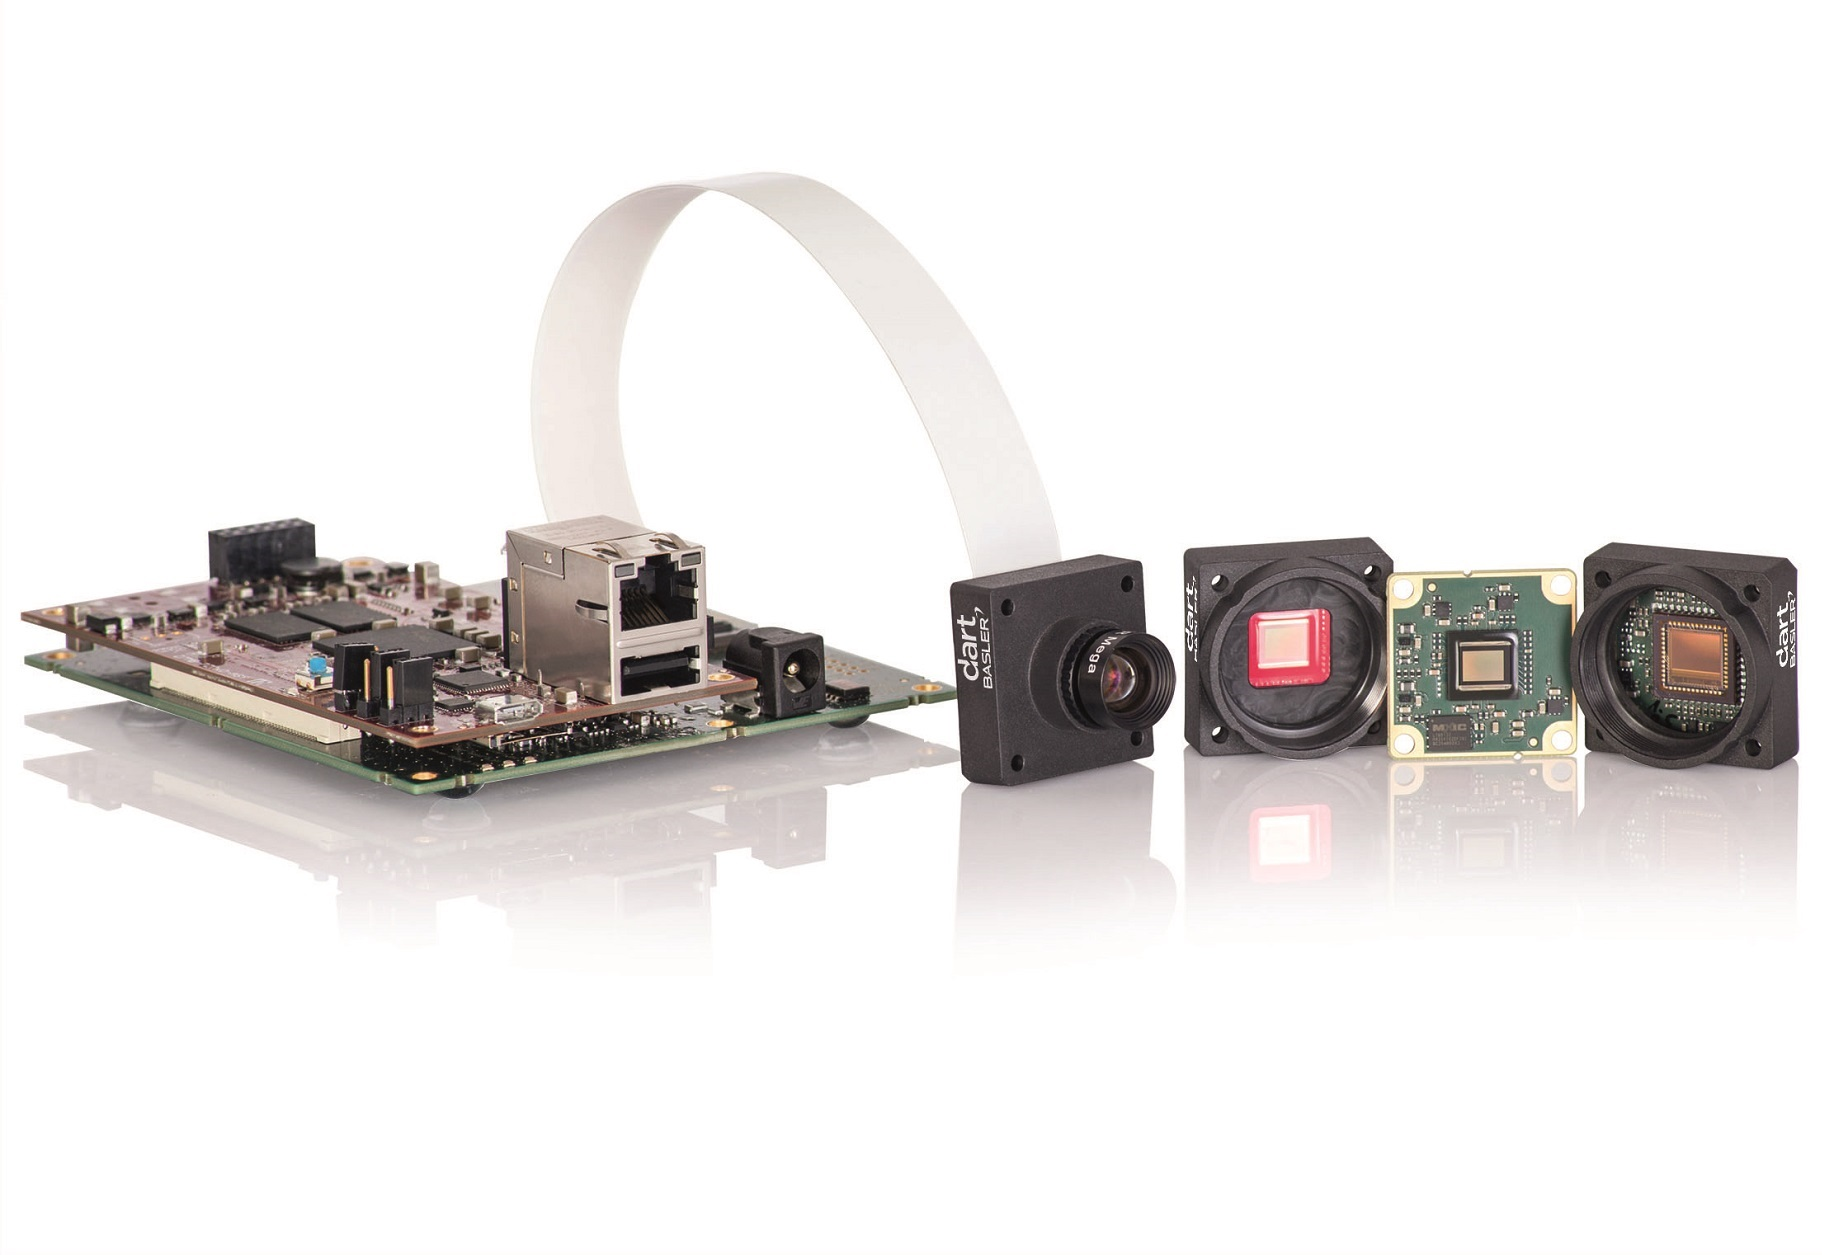 Basler Presenting Camera Modules at embedded world 2017